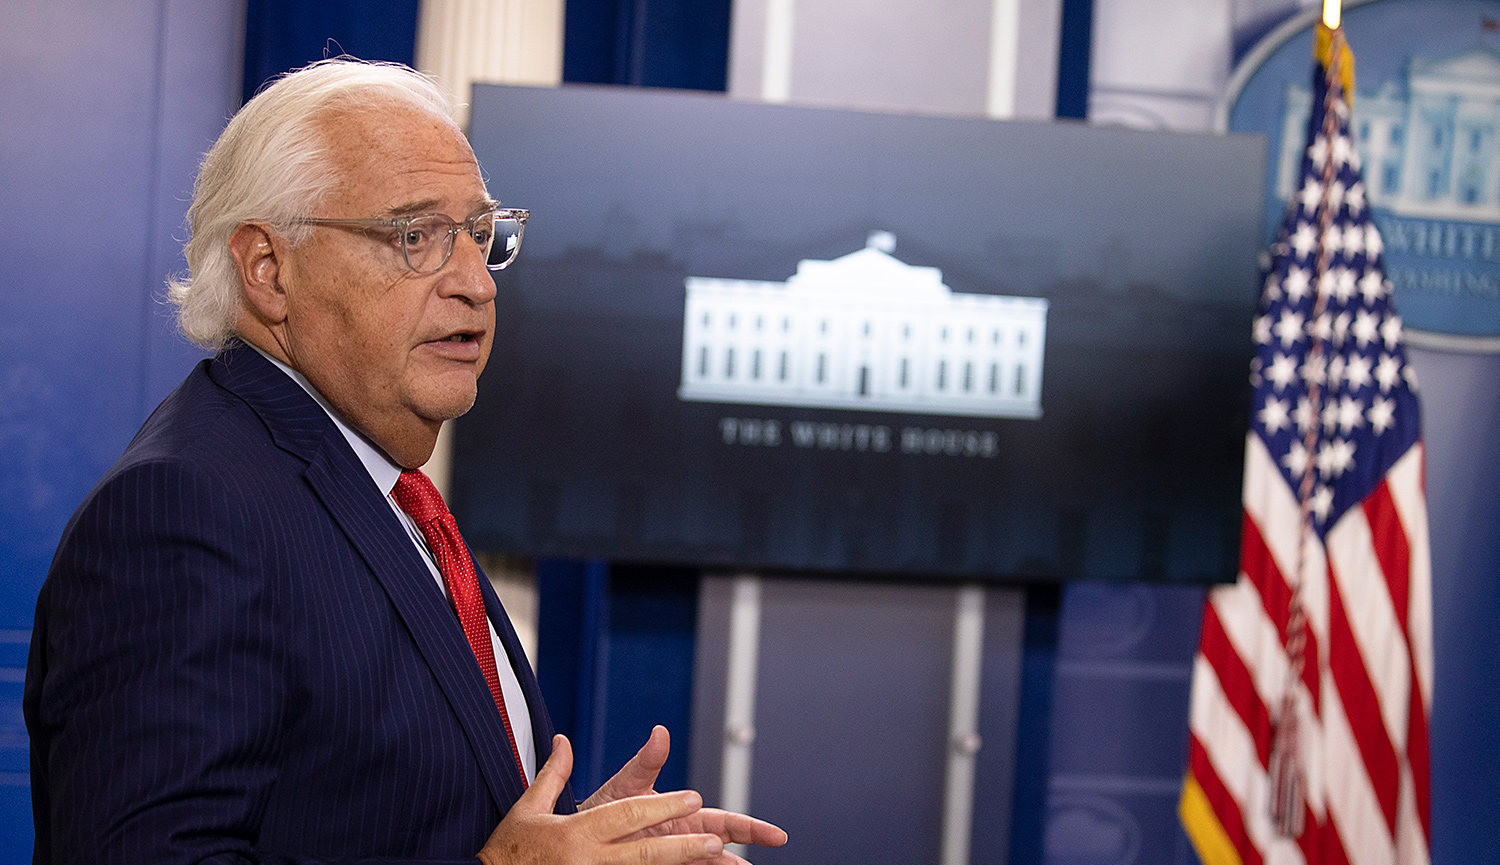 David Friedman, U.S. Ambassador to Israel, speaks during a briefing on the Emirates deal at the White House on August 13, 2020. Tasos Katopodis/Getty Images.